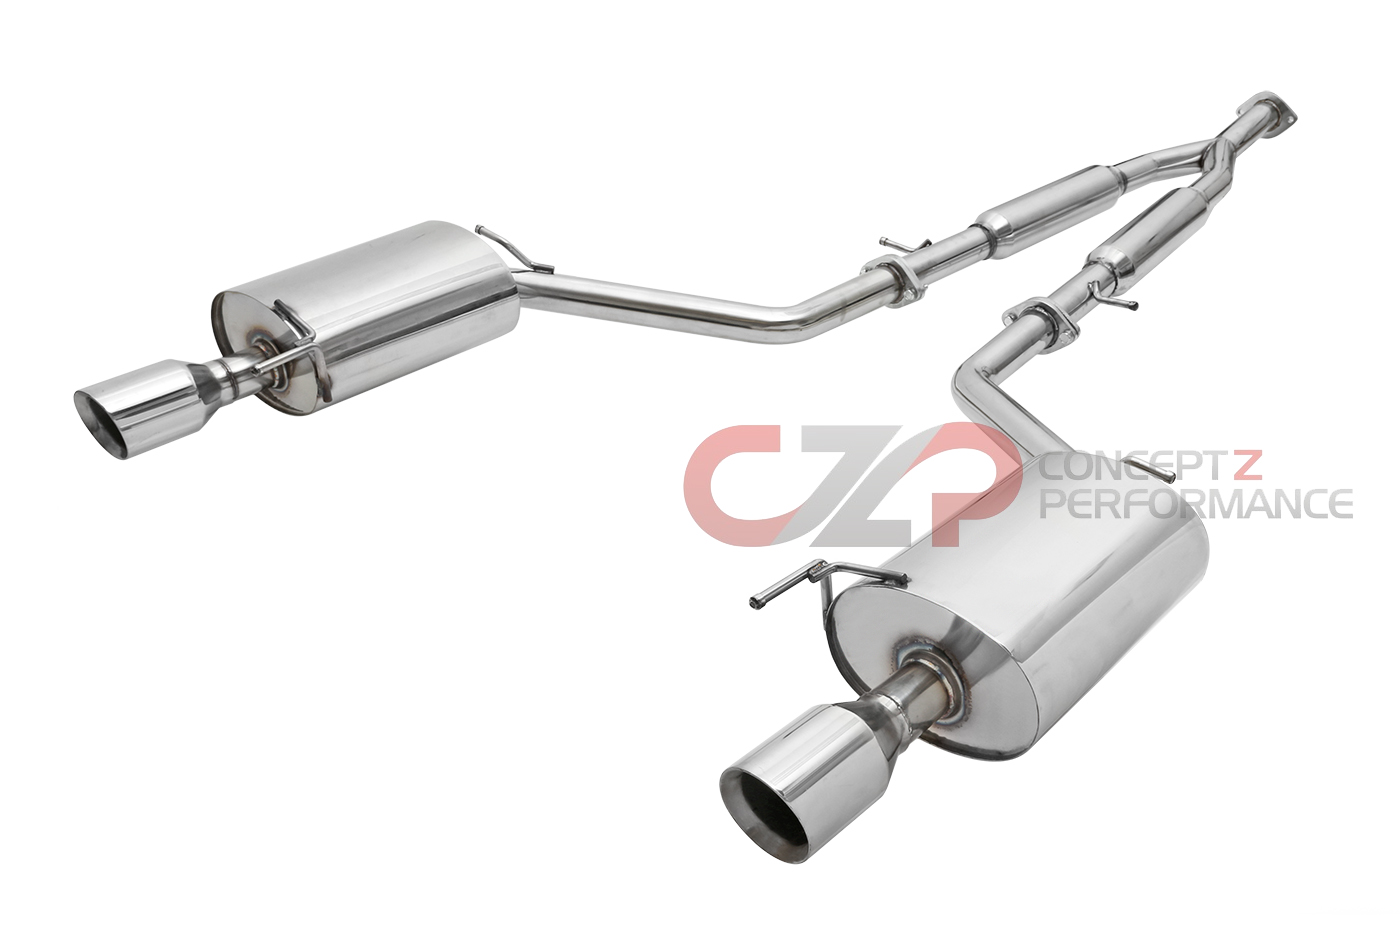 V36 Exhaust System :: Exhaust Systems & Kits - Concept Z